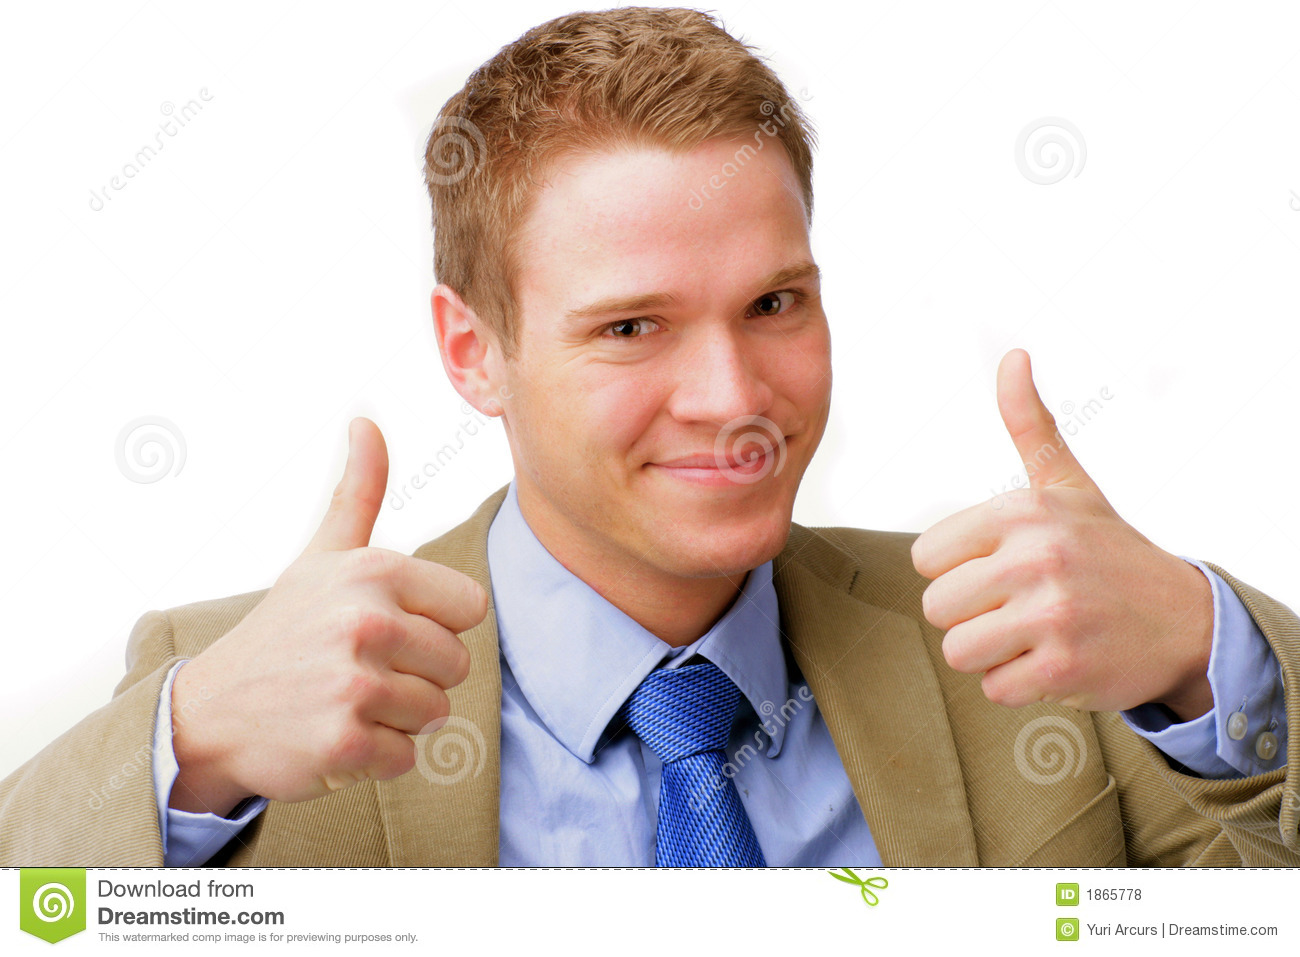 Royalty Free Stock Photos: Two Thumbs Up!. Image: 1865778